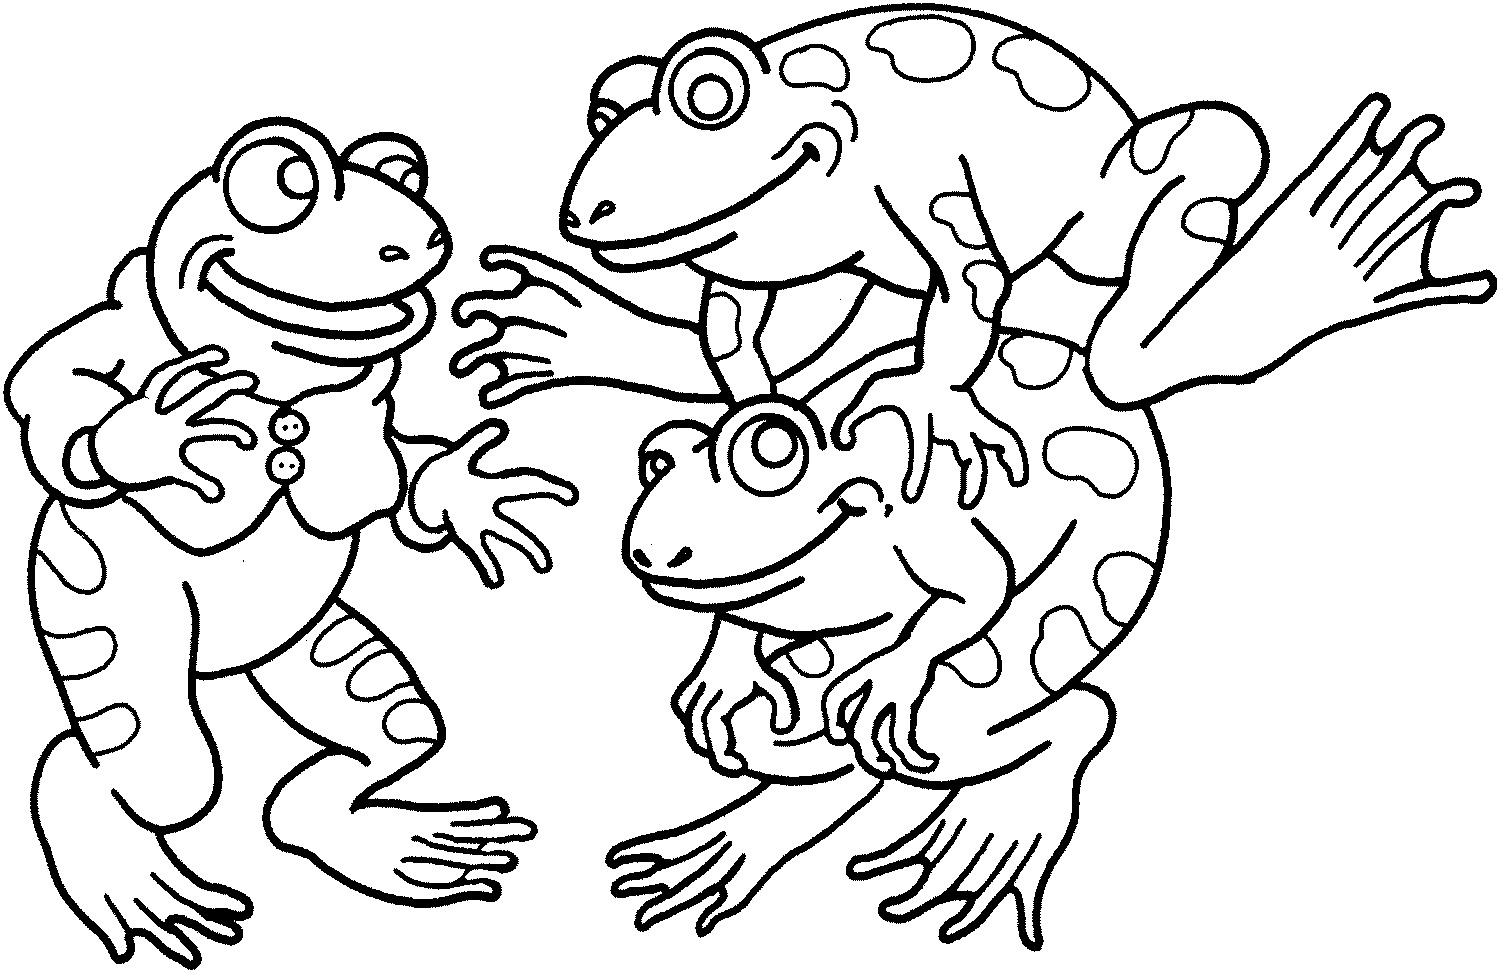 frogs to color for free free printable frog coloring pages for kids animal place color for to free frogs